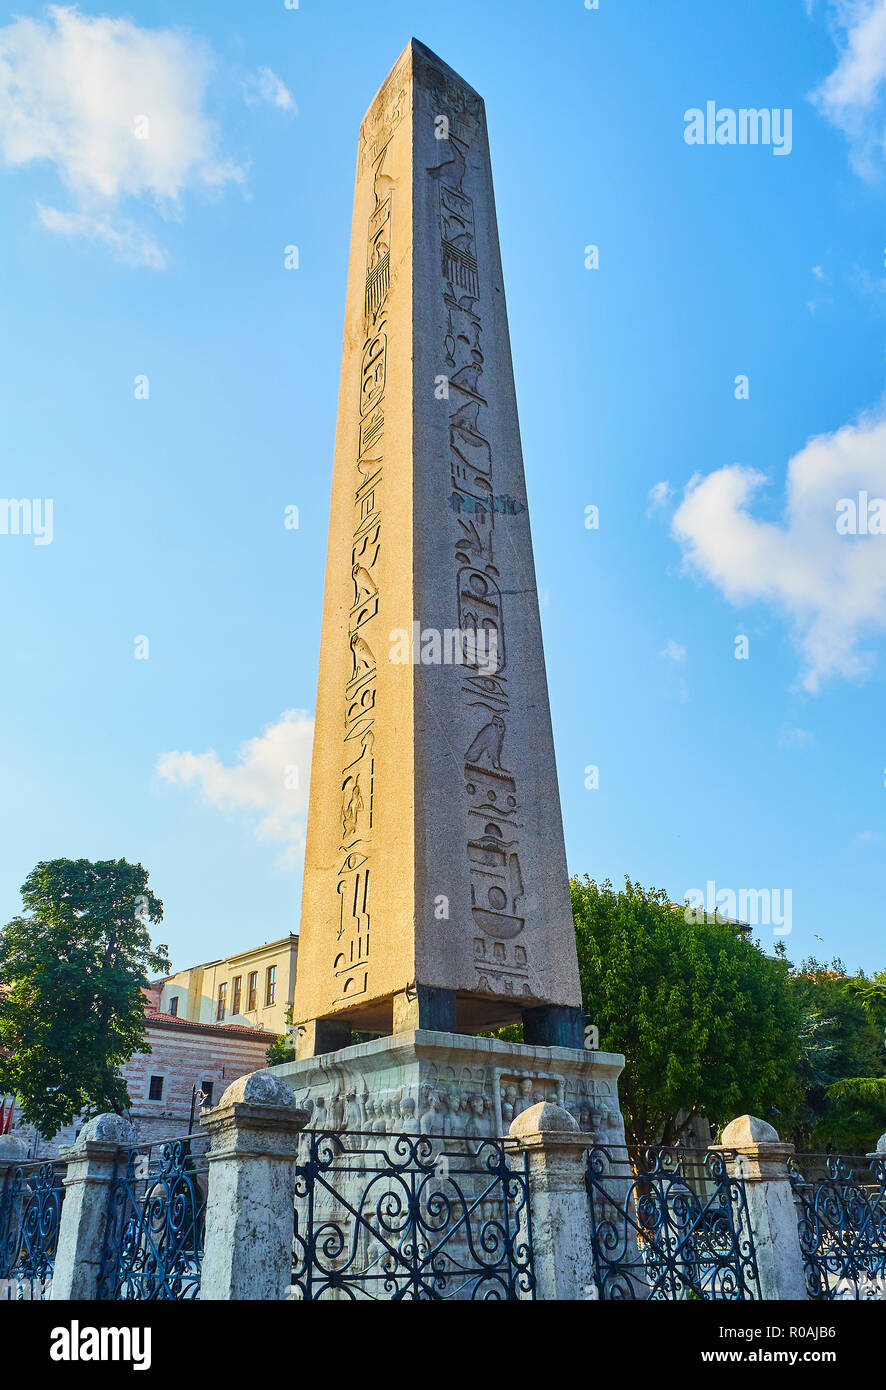 The Obelisk of Theodosius, an ancient Egyptian obelisk in the Hippodrome of Constantinople. SultanAhmet Square. Istanbul, Turkey. - Stock Image